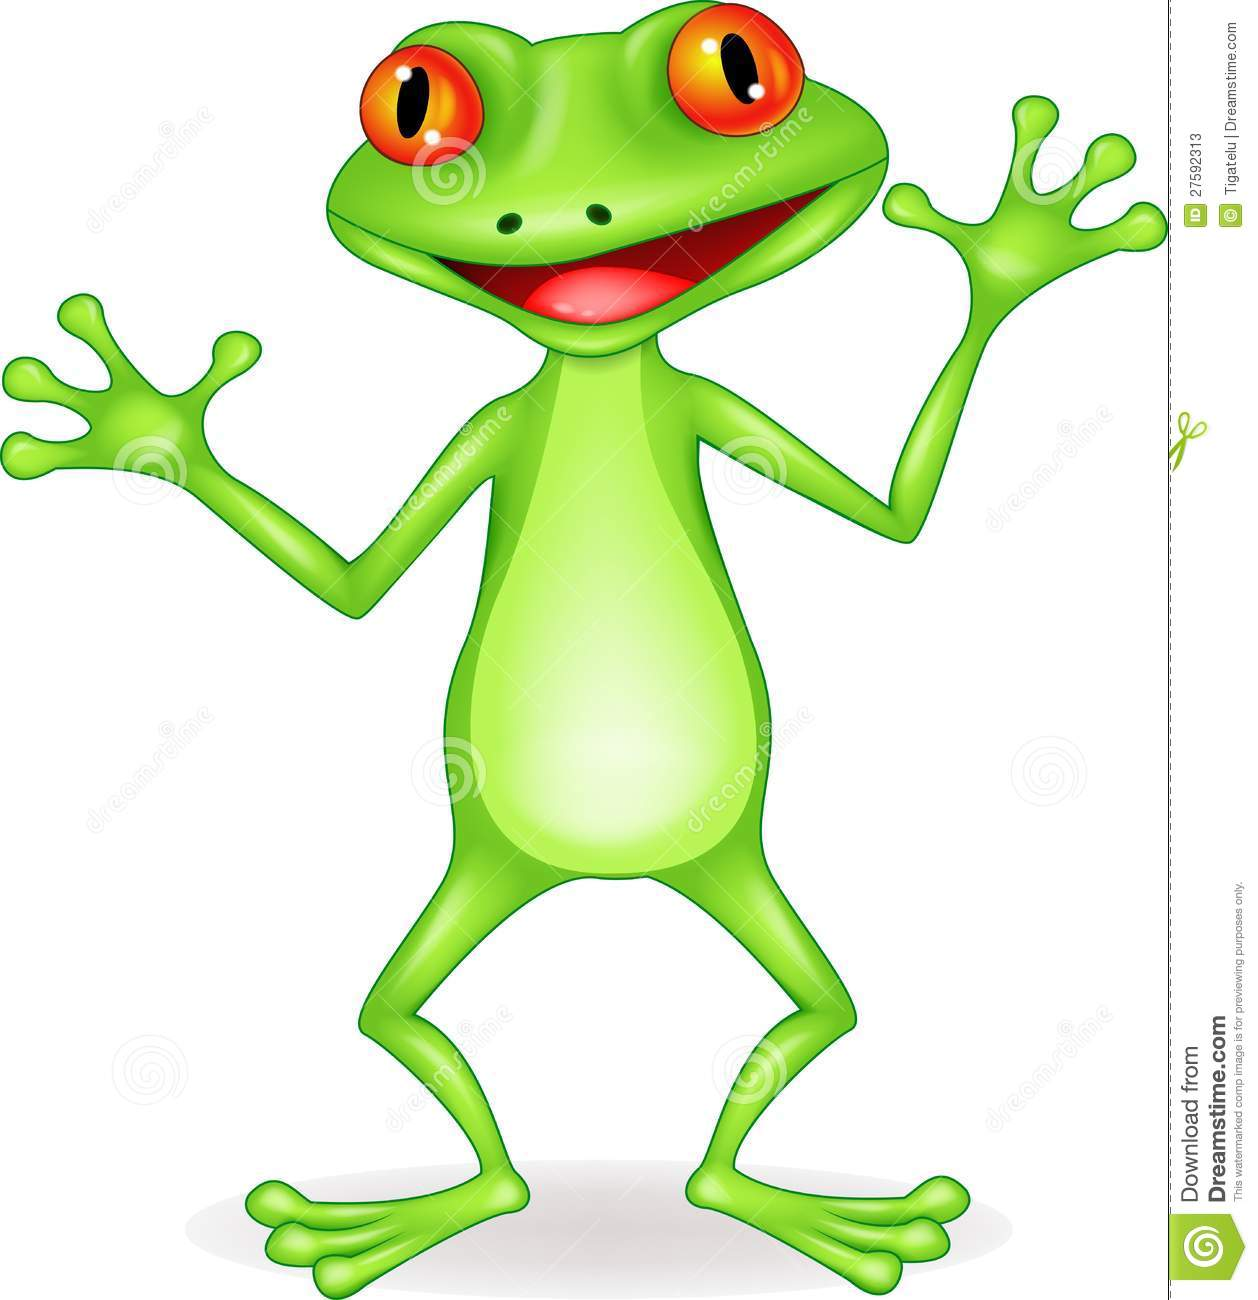 Funny Frog Cartoon Stock Photos - Image: 27592313